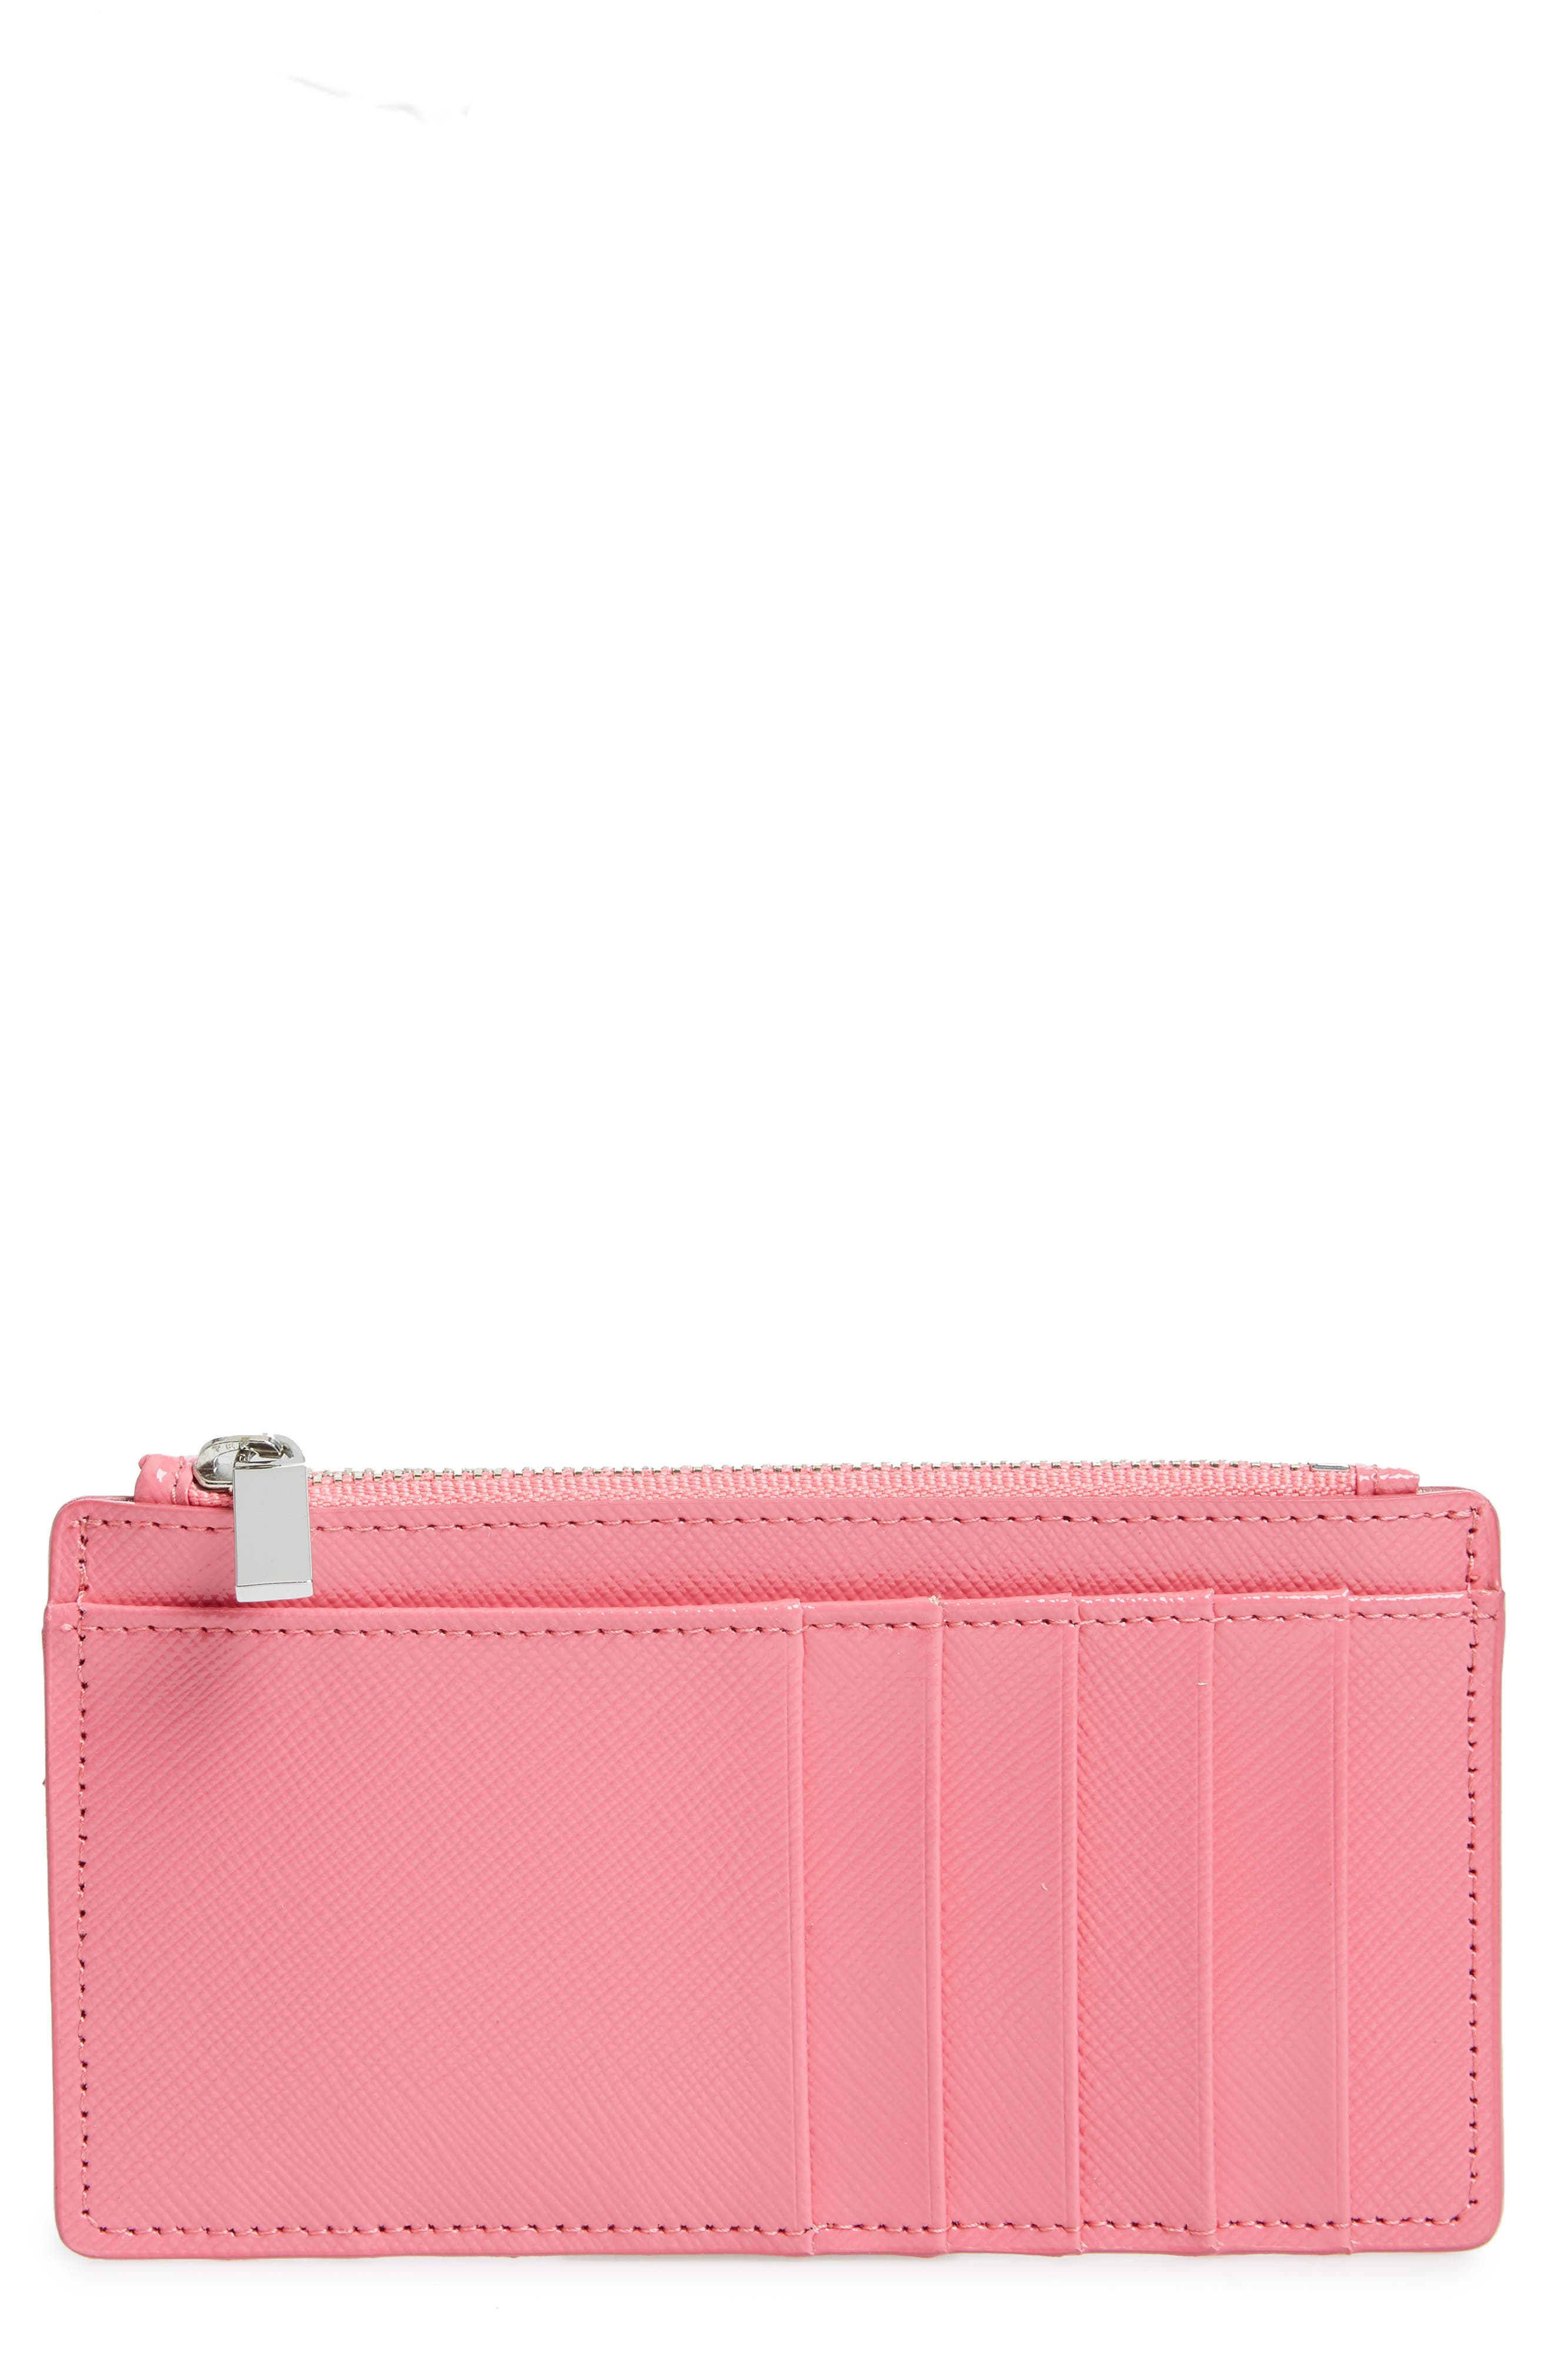 Main Image - Nordstrom Leather Card Case